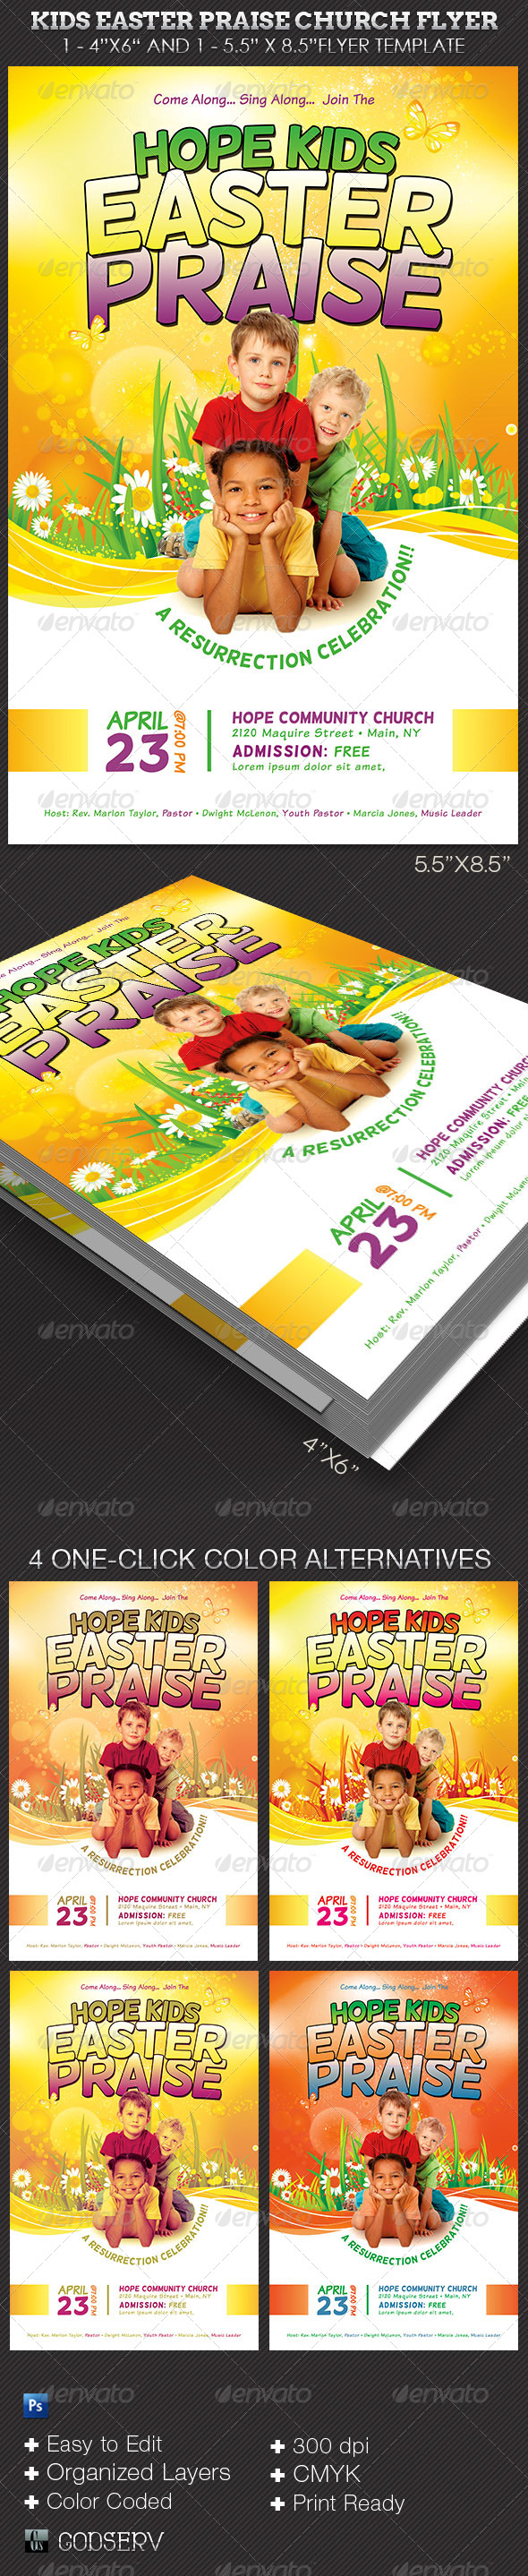 Blank Church Flyers Easter Church Flyers Templates